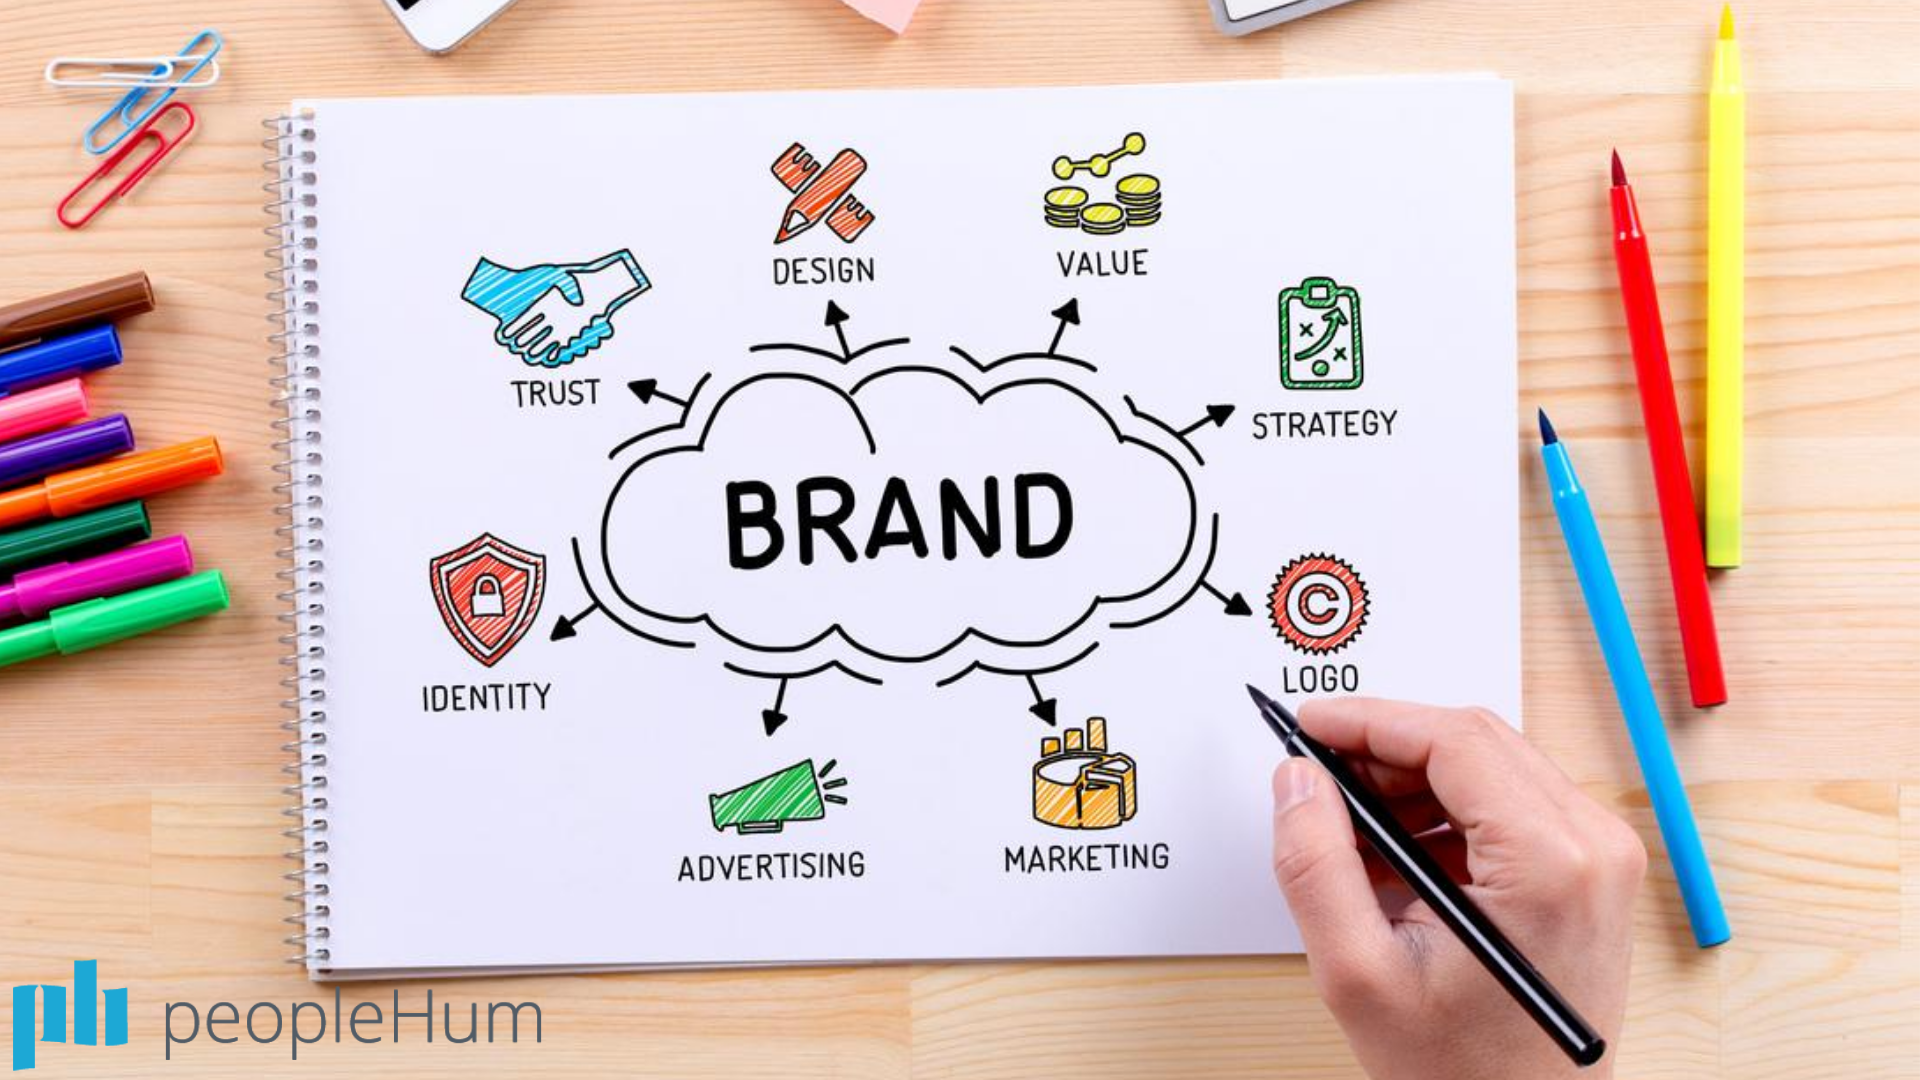 Five easy steps to discovering your personal brand